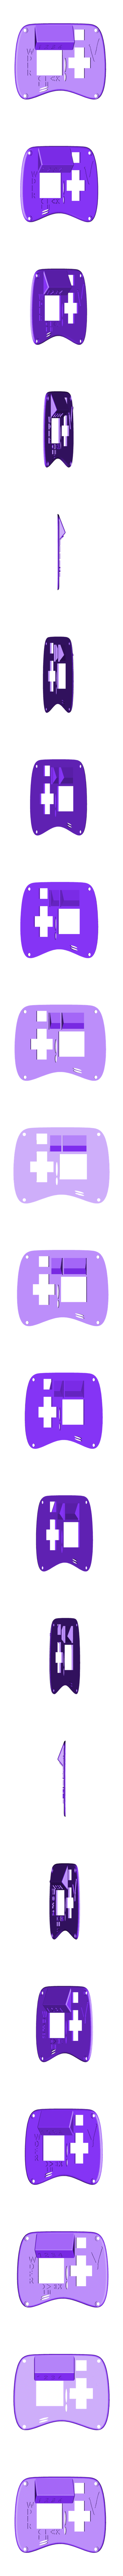 Gamepad_V1r8_Cover.stl Download free STL file Vorpal Combat Hexapod Robot • 3D printable template, pend